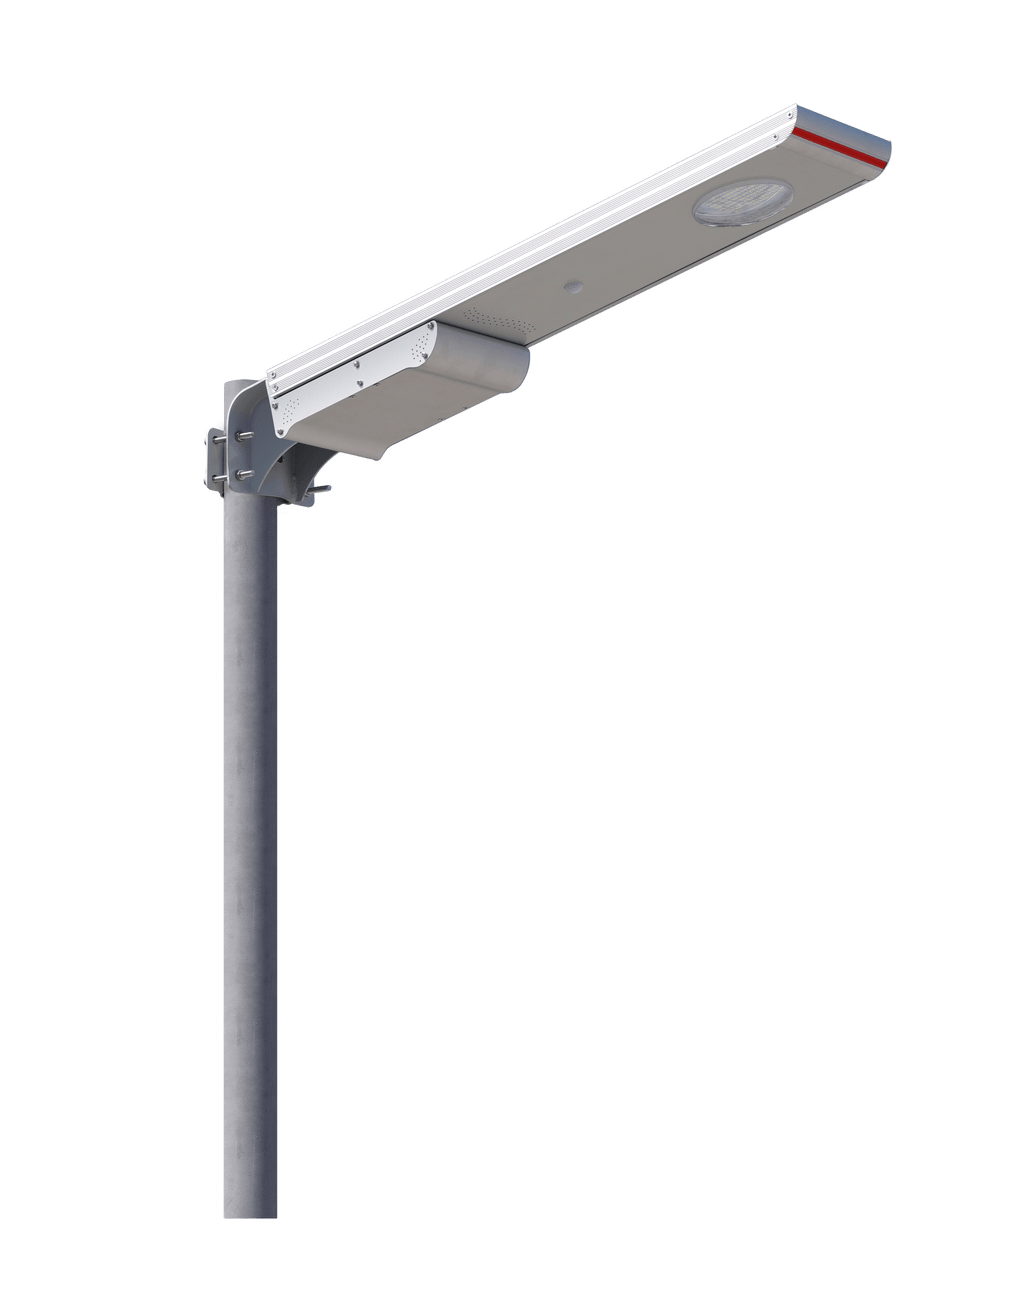 15W Integrated Solar Luminaire from solar-power